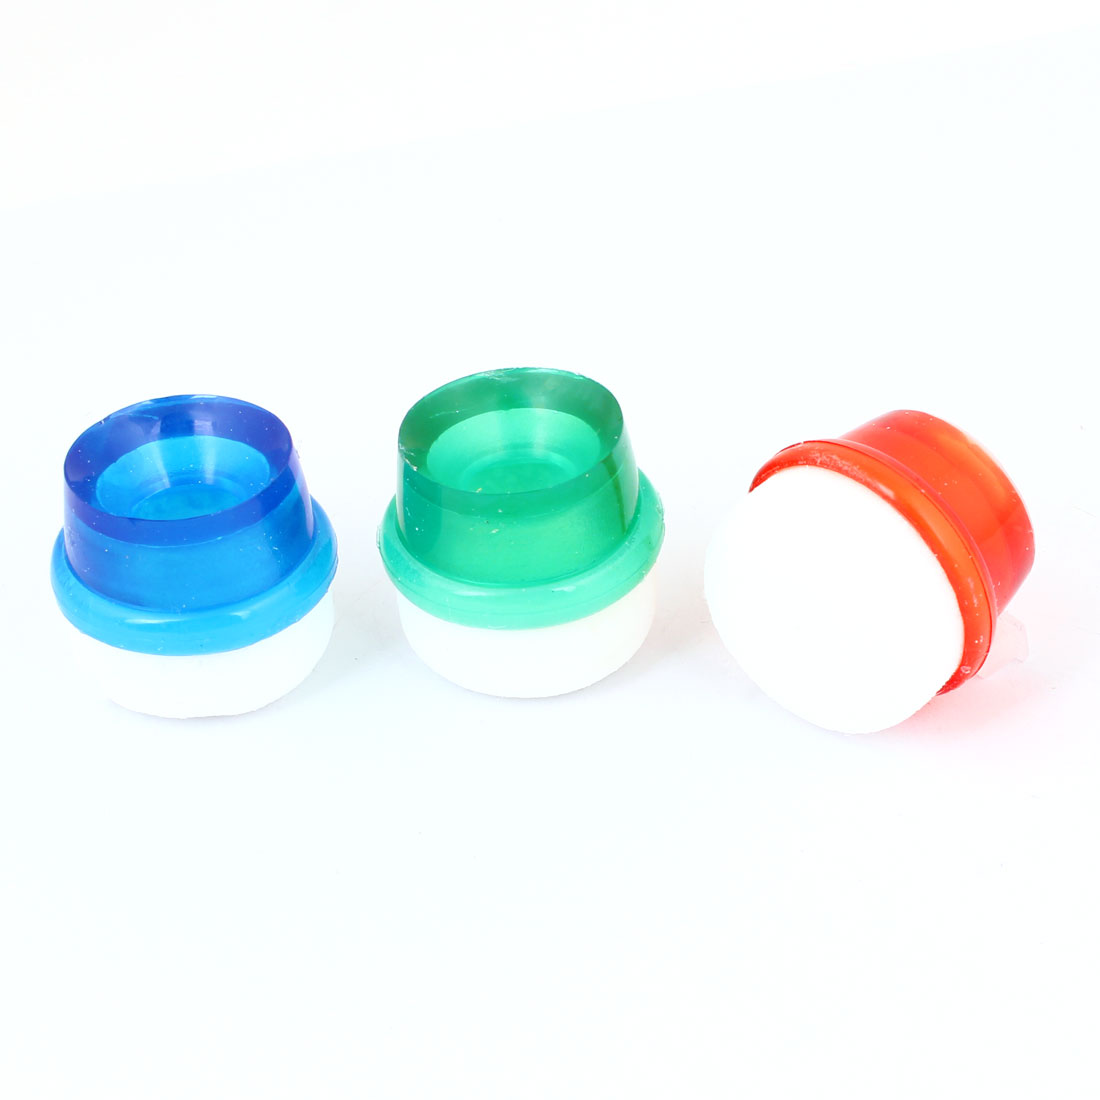 3 Pcs Soft Plastic Tap Water Purifier Filter Filtering